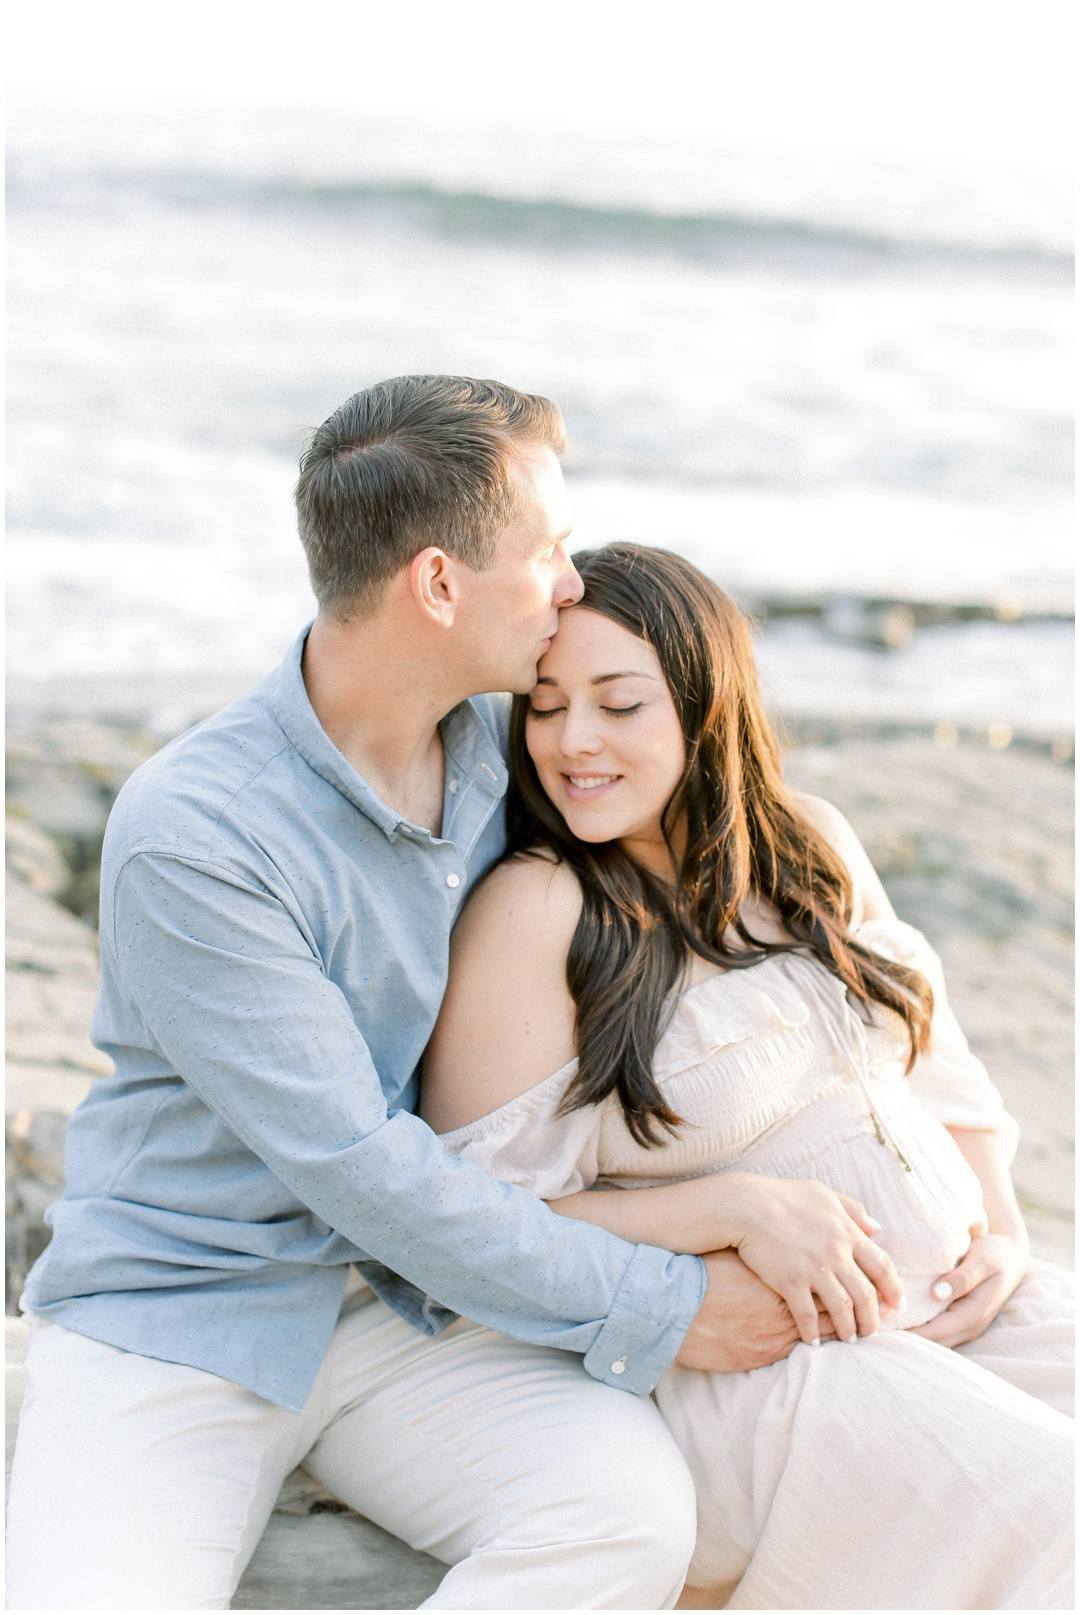 Newport_Beach_Newborn_Light_Airy_Natural_Photographer_Newport_Beach_Photographer_Orange_County_Maternity_Photographer_Cori_Kleckner_Photography_Newport_Beach_Photographer_Candice_Byle_Candice_Fillippini_Kevin_Fillippini__4170.jpg